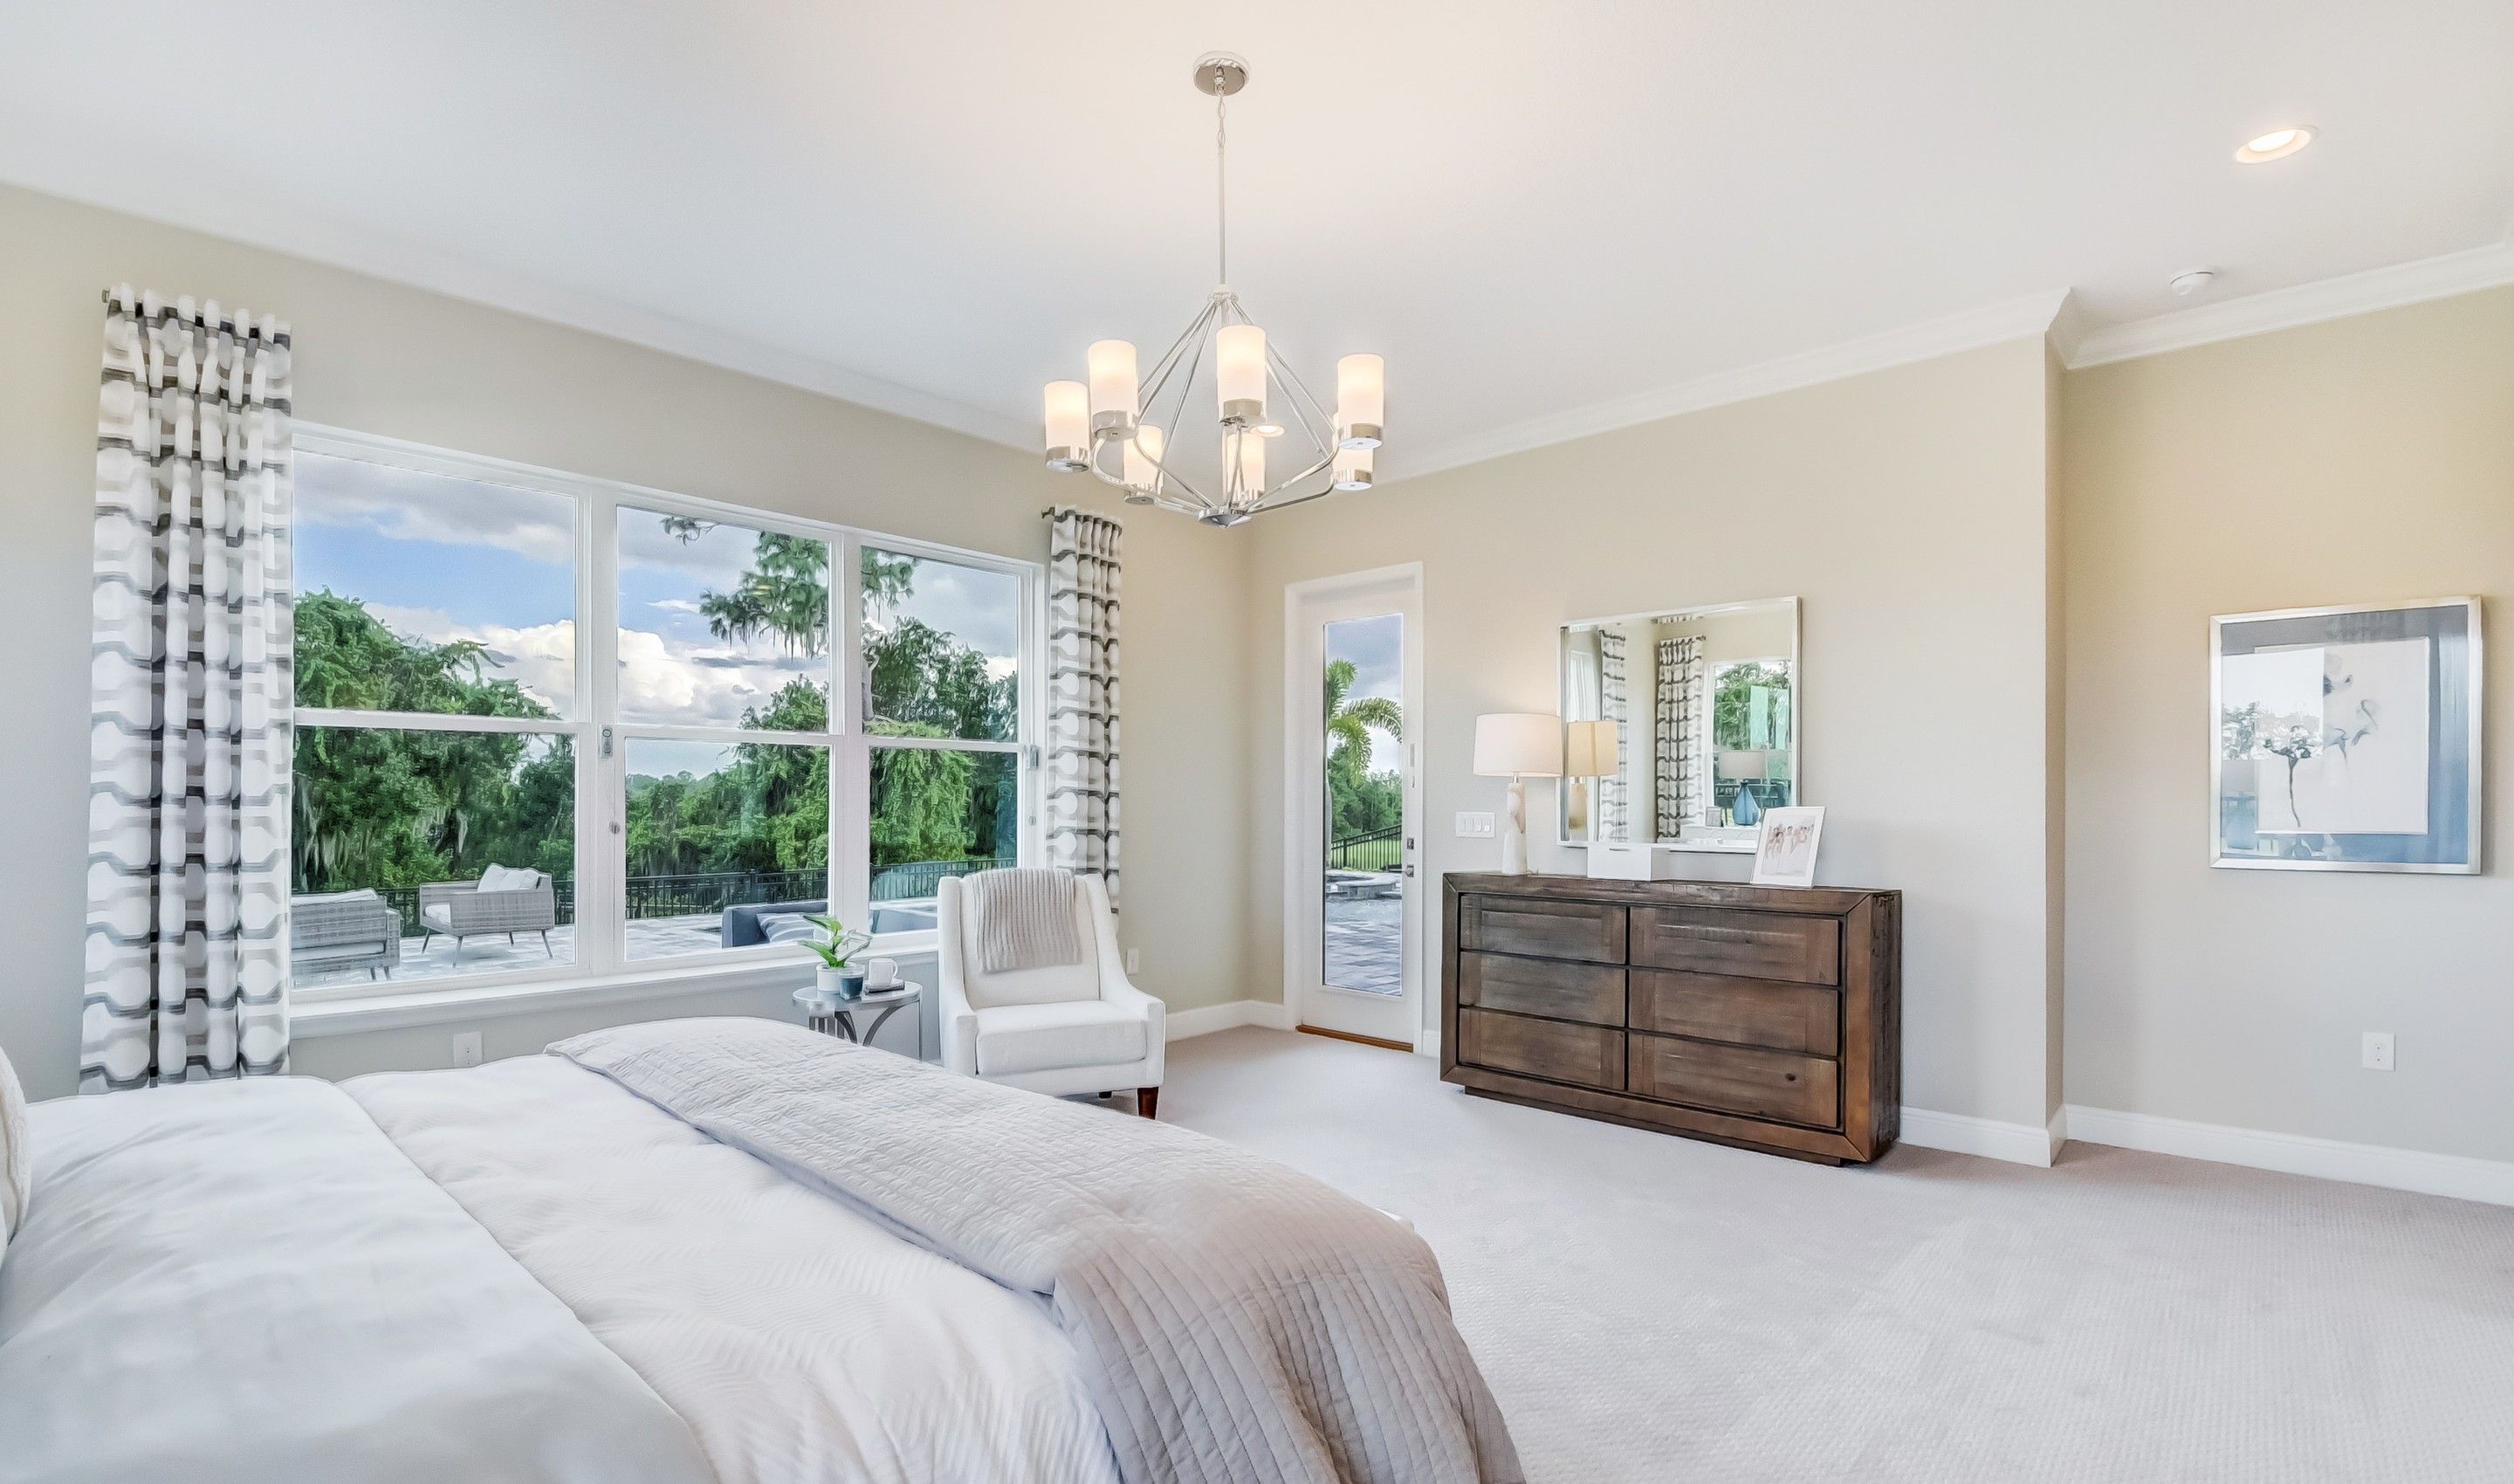 Bedroom featured in the Siena By K. Hovnanian® Homes in Orlando, FL